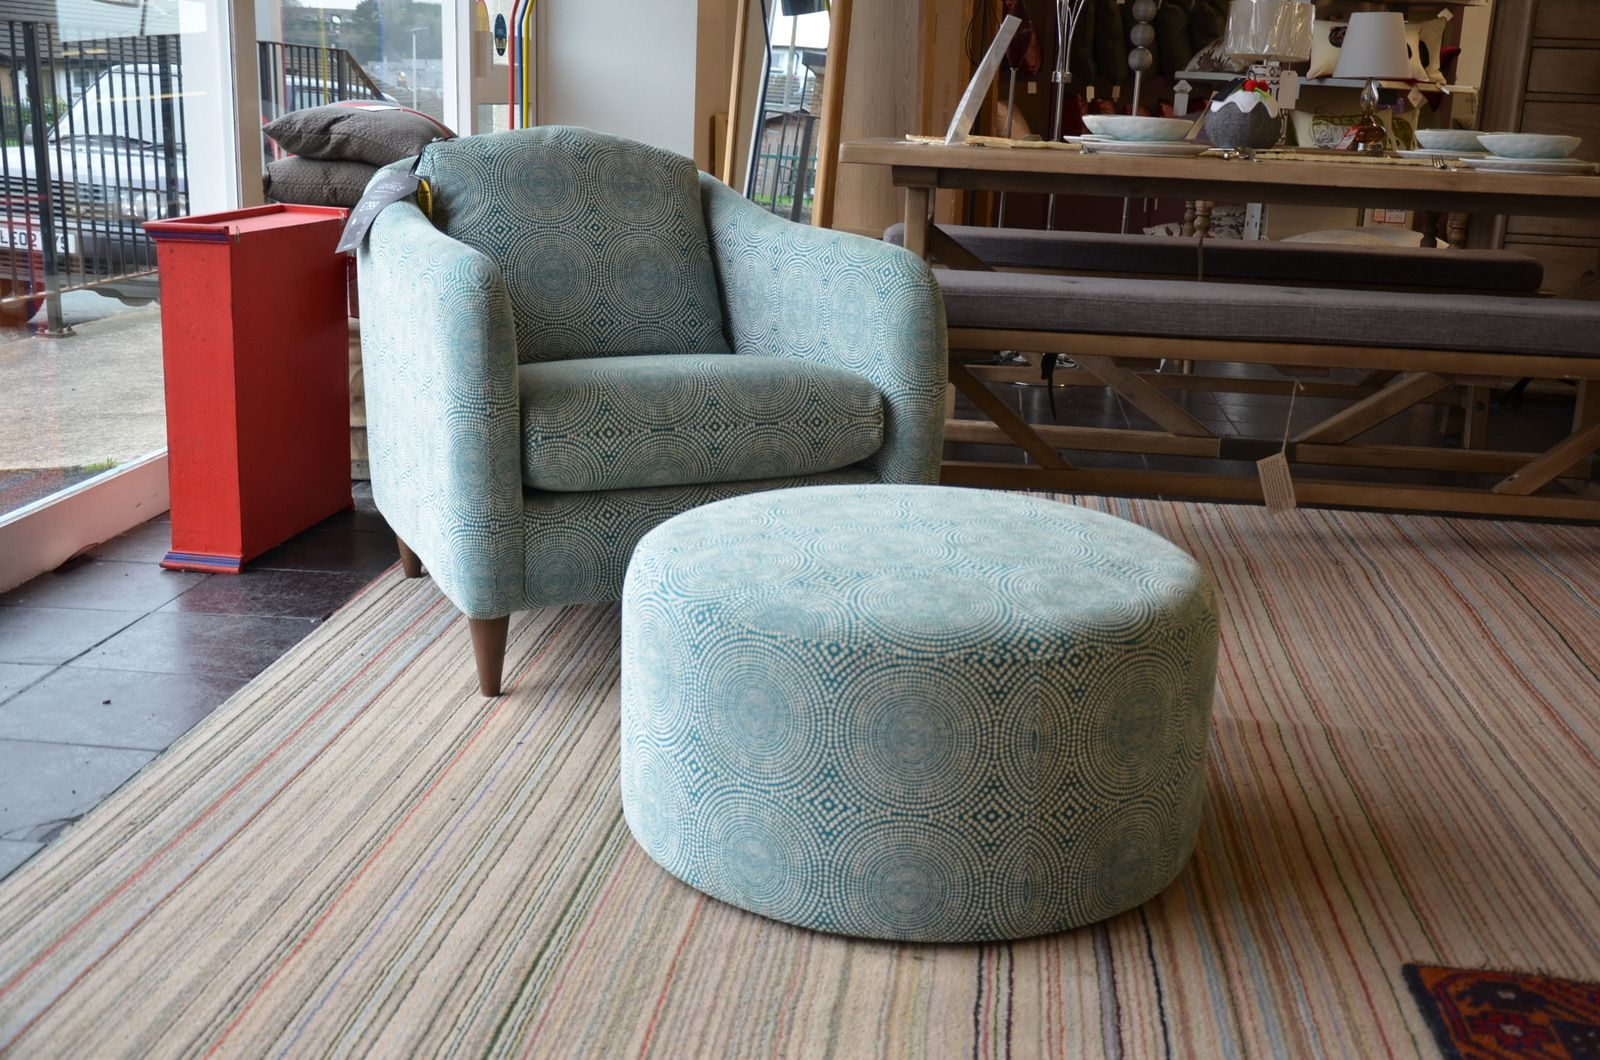 Hover Round Chairs George Accent Chair And Round Footstool